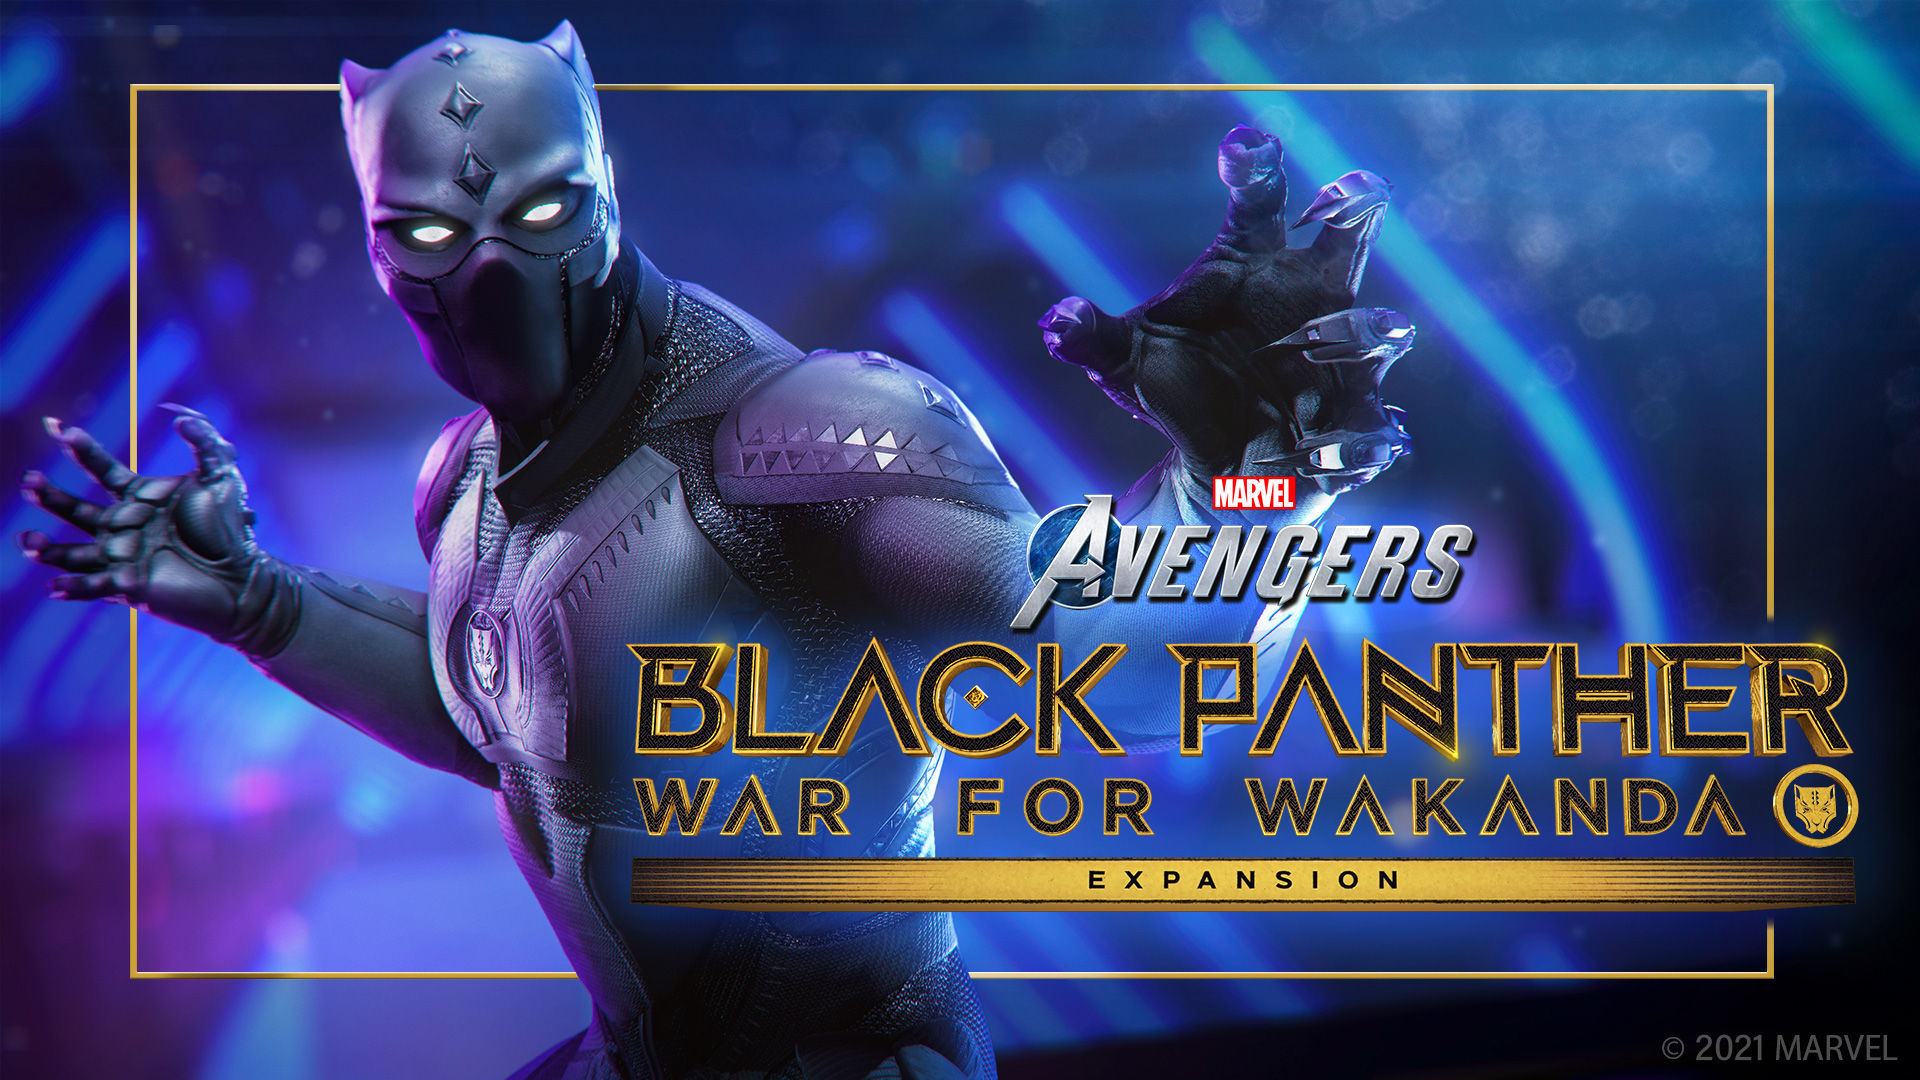 Marvel's Avengers - Black Panter: War for Wakanda Logo over an image of Black Panther ready to strike.